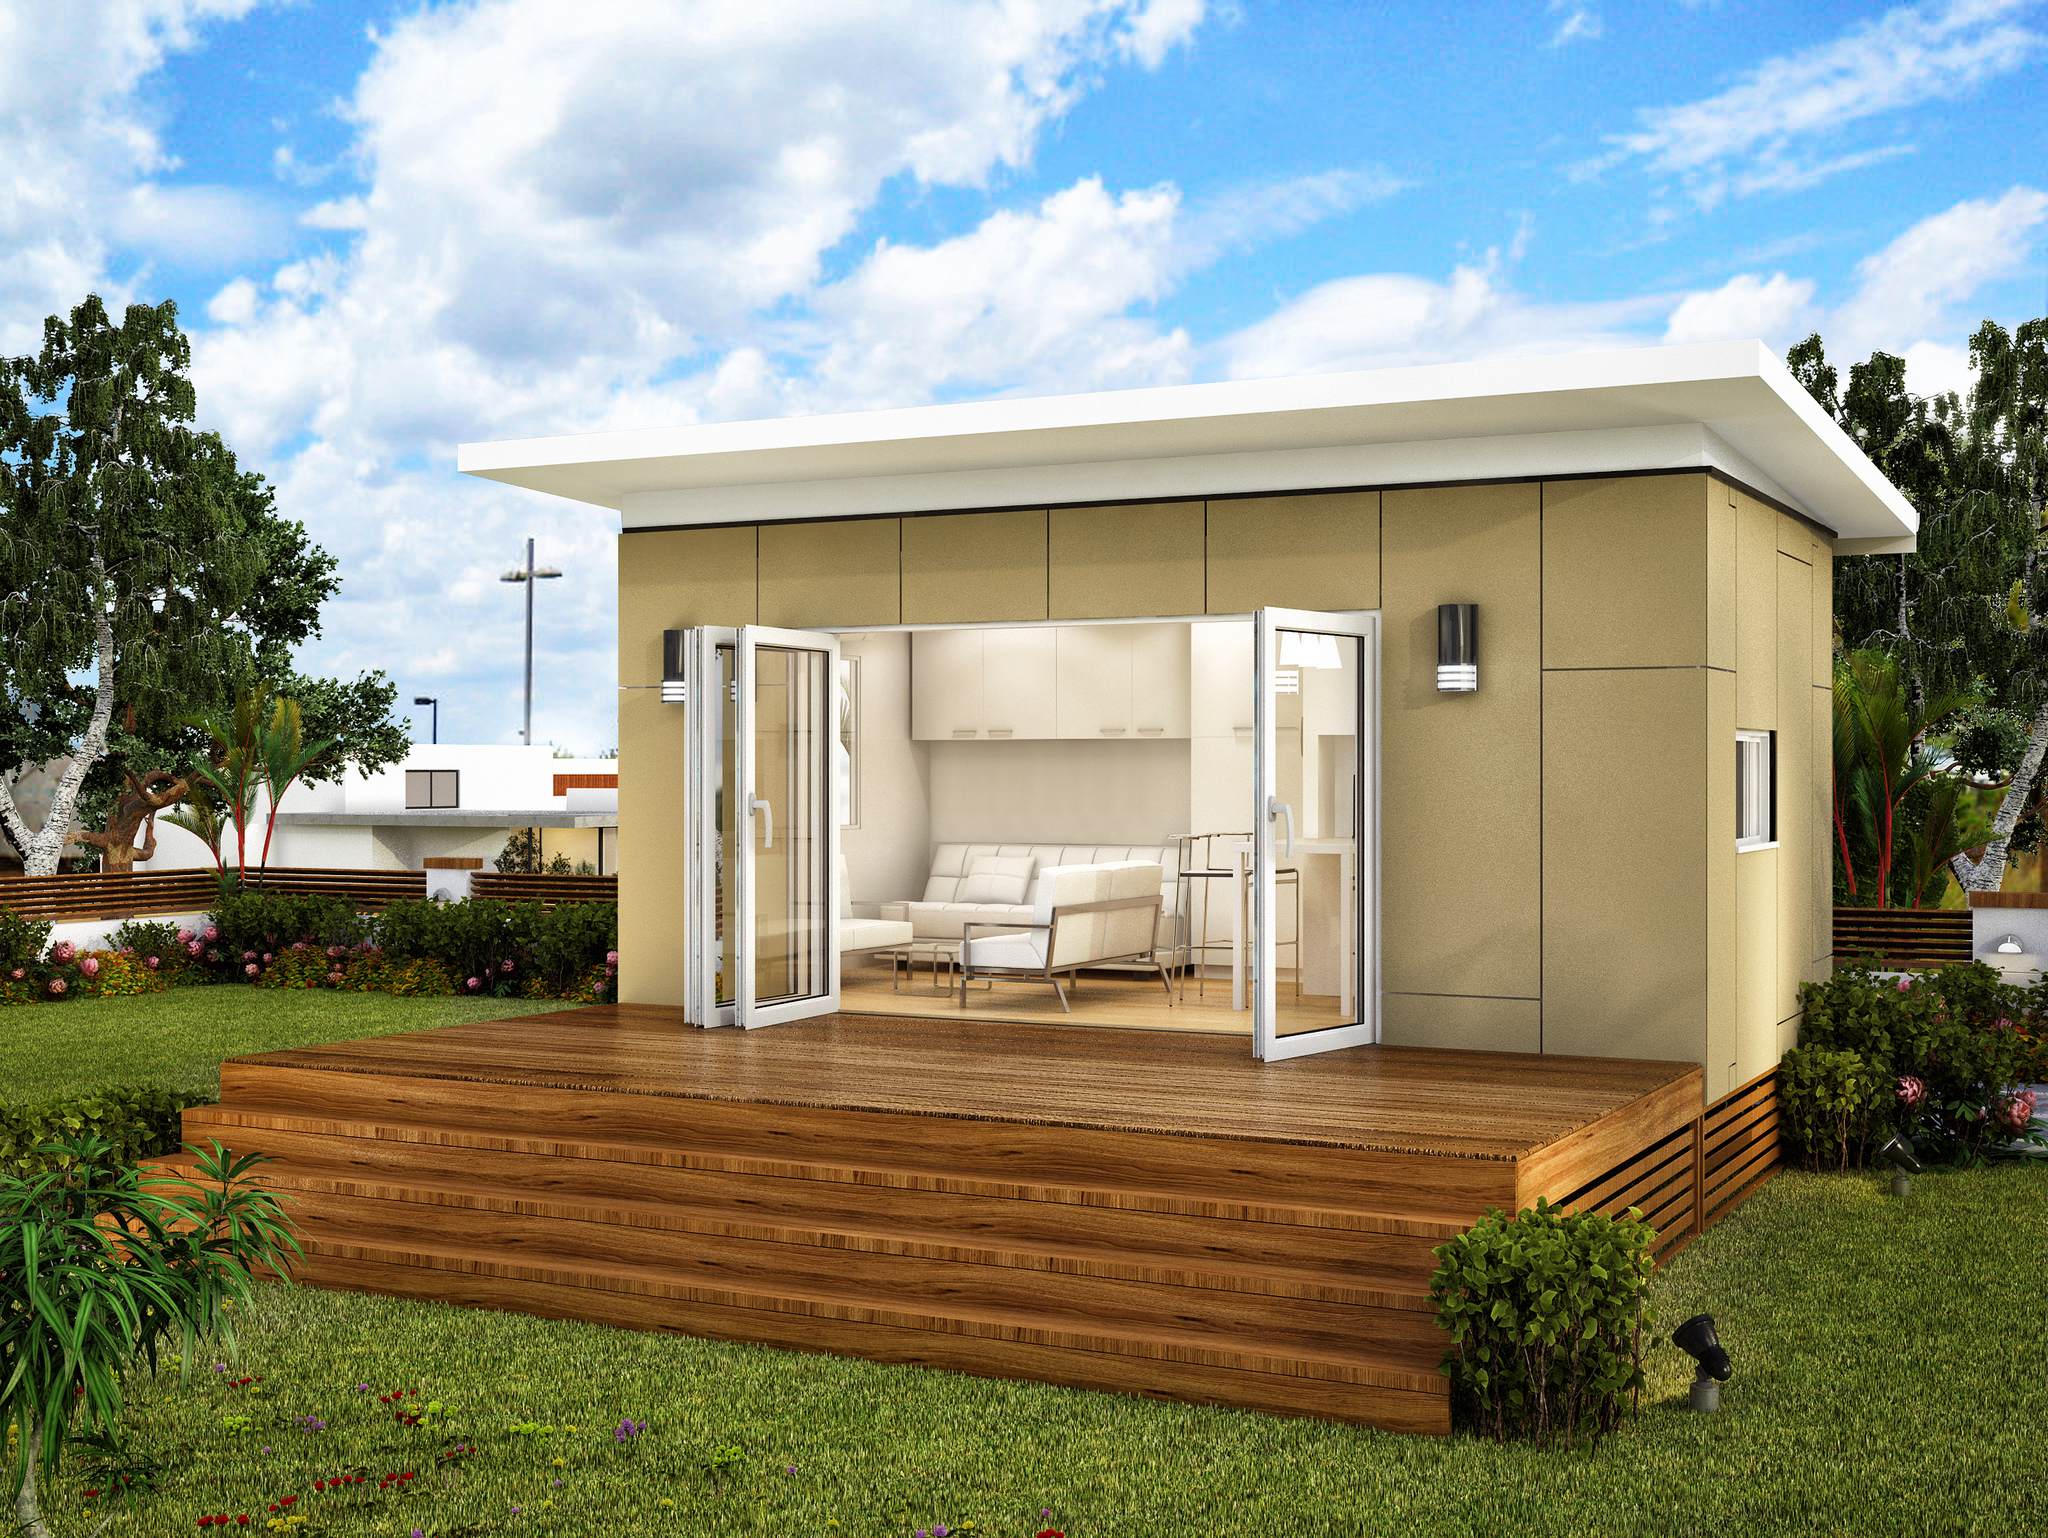 storage container houses 10 more container house design ideas container living 10040